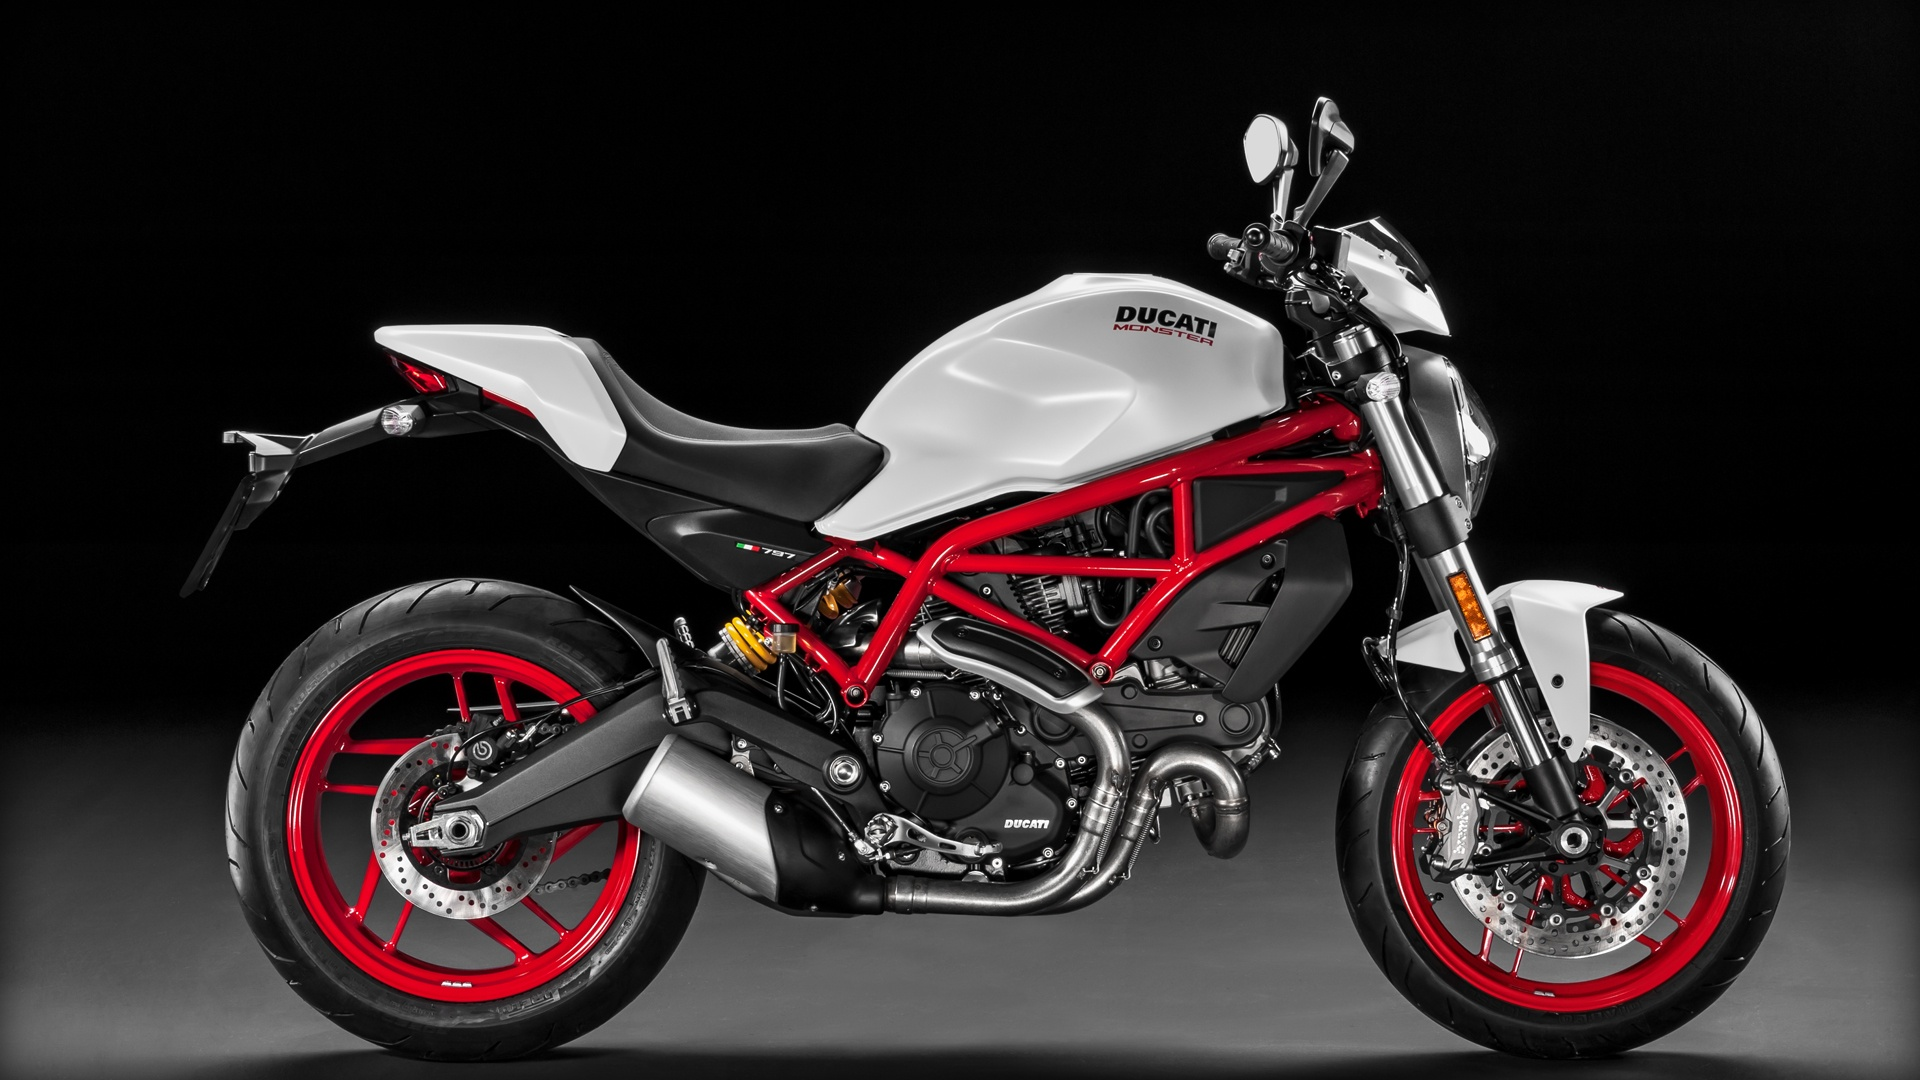 2017 Ducati Monster 797 Plus for sale at Ducati Preston, Lancashire, Scotland